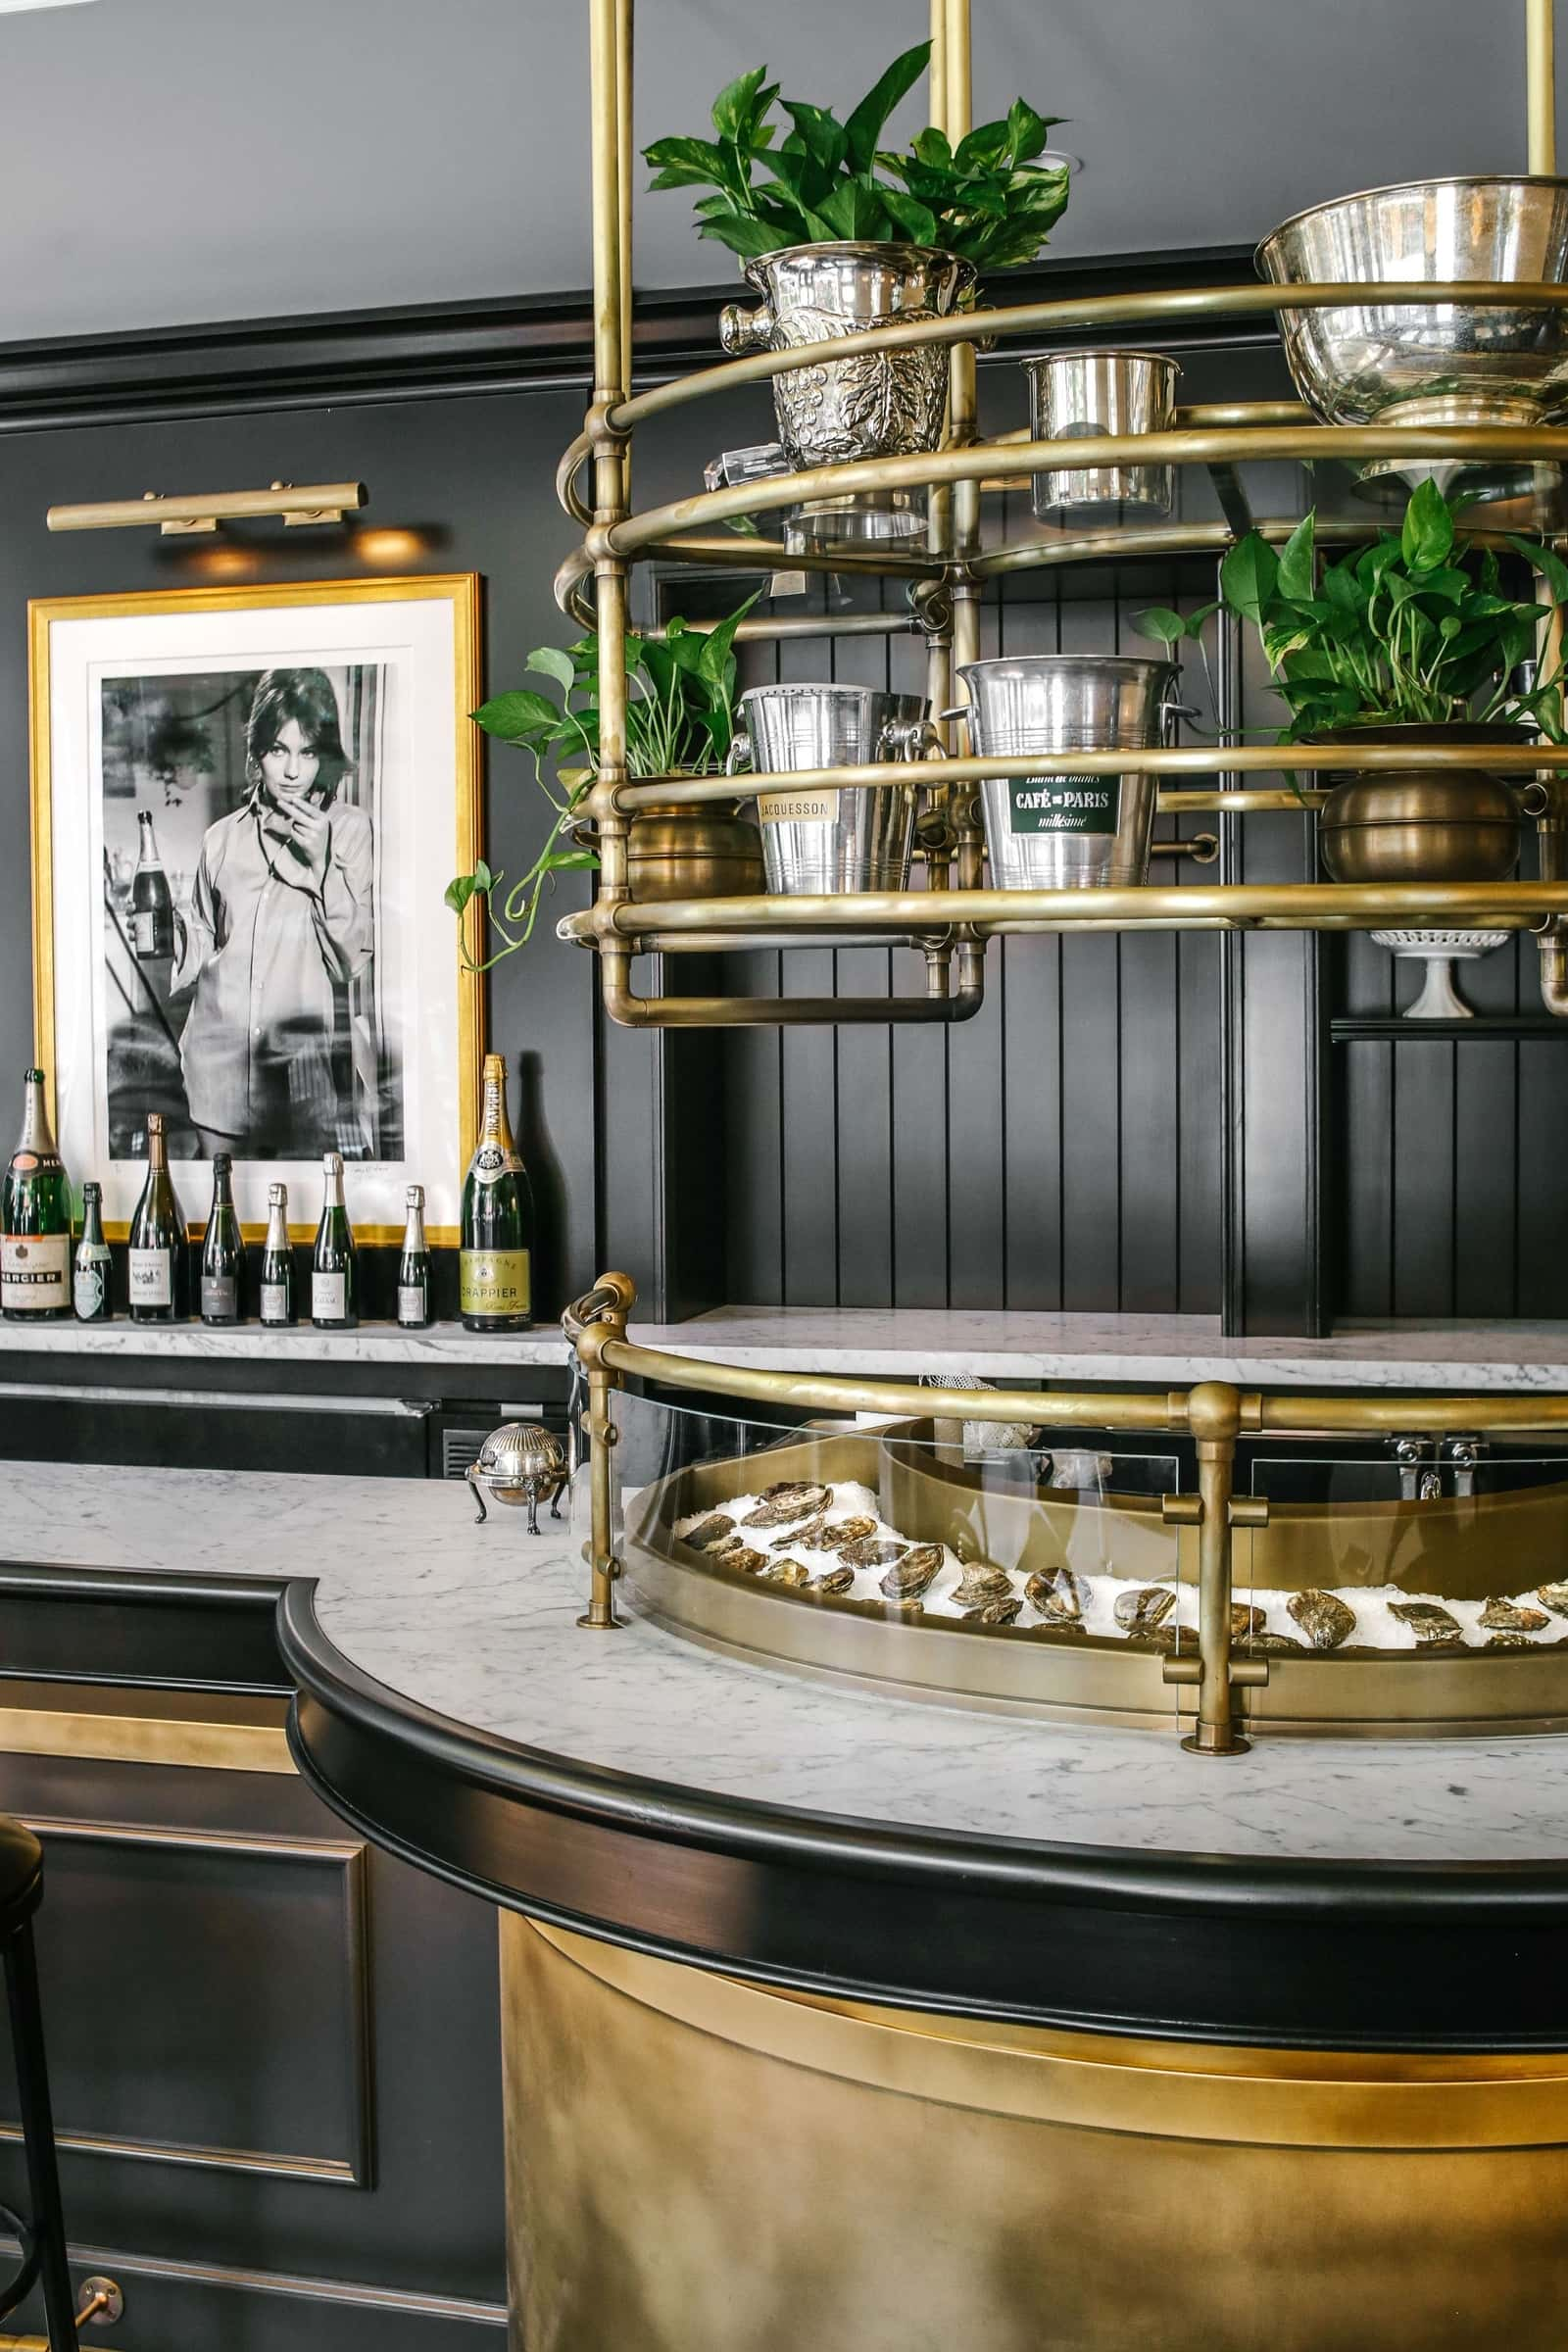 This All-Black Champagne & Oyster Bar in NYC Will Make Us Want To Toast Before New Year's Eve! oyster bar This All-Black Champagne & Oyster Bar in NYC Will Make Us Want To Toast Before New Year's Eve! 6